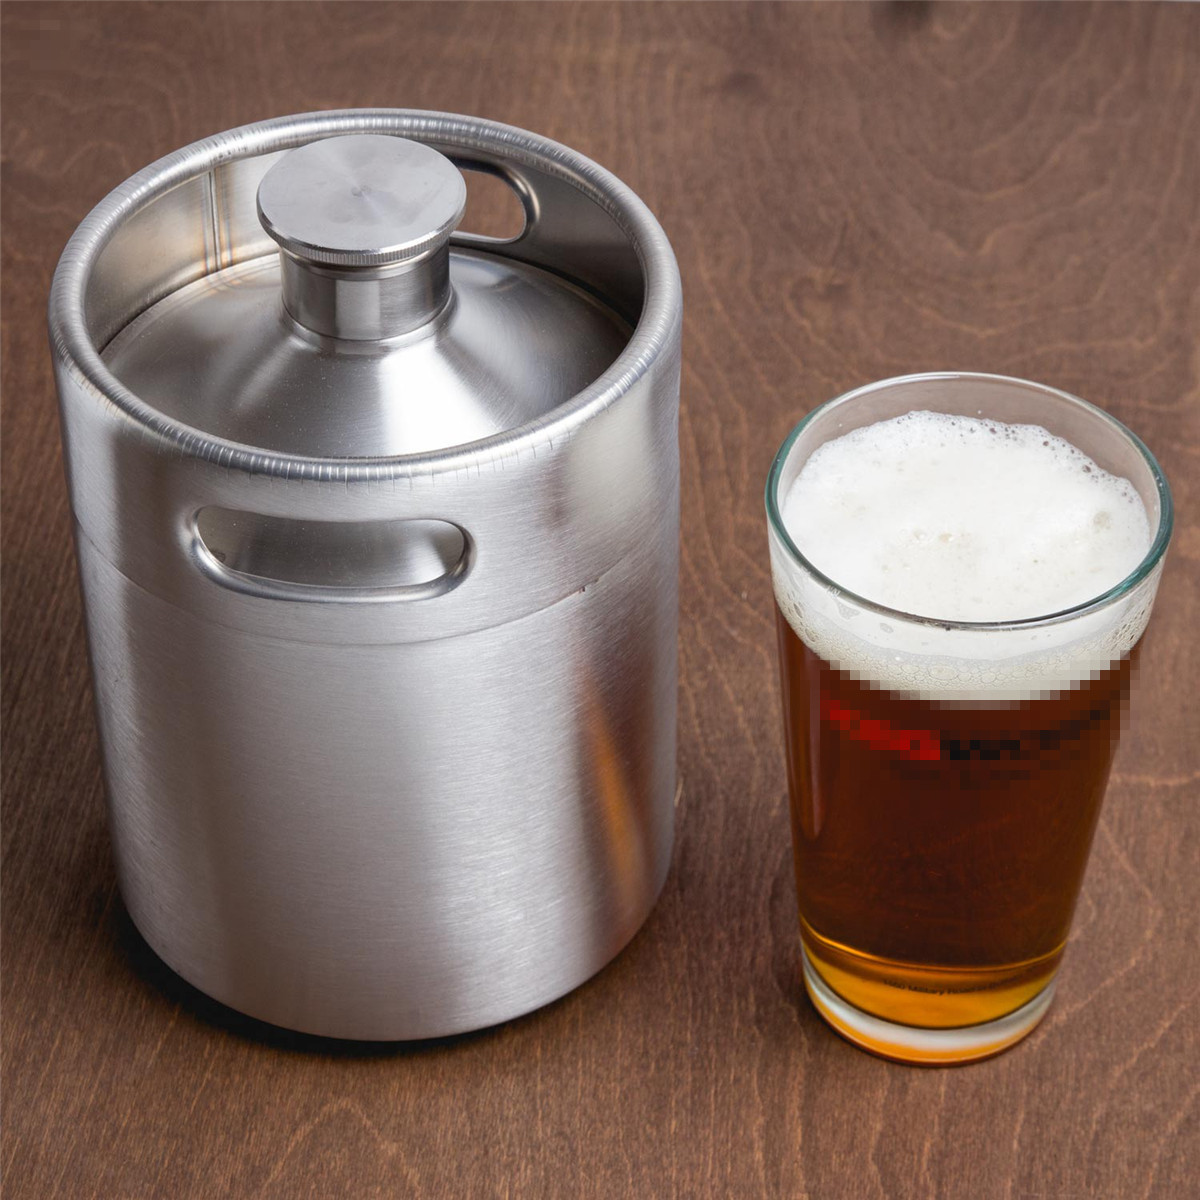 2L 304 Stainless Steel Mini Beer Keg Pressurized Growler Beer Bottle Home Brewing Fruit Wine Beer Equipment Making Tool Home Pub